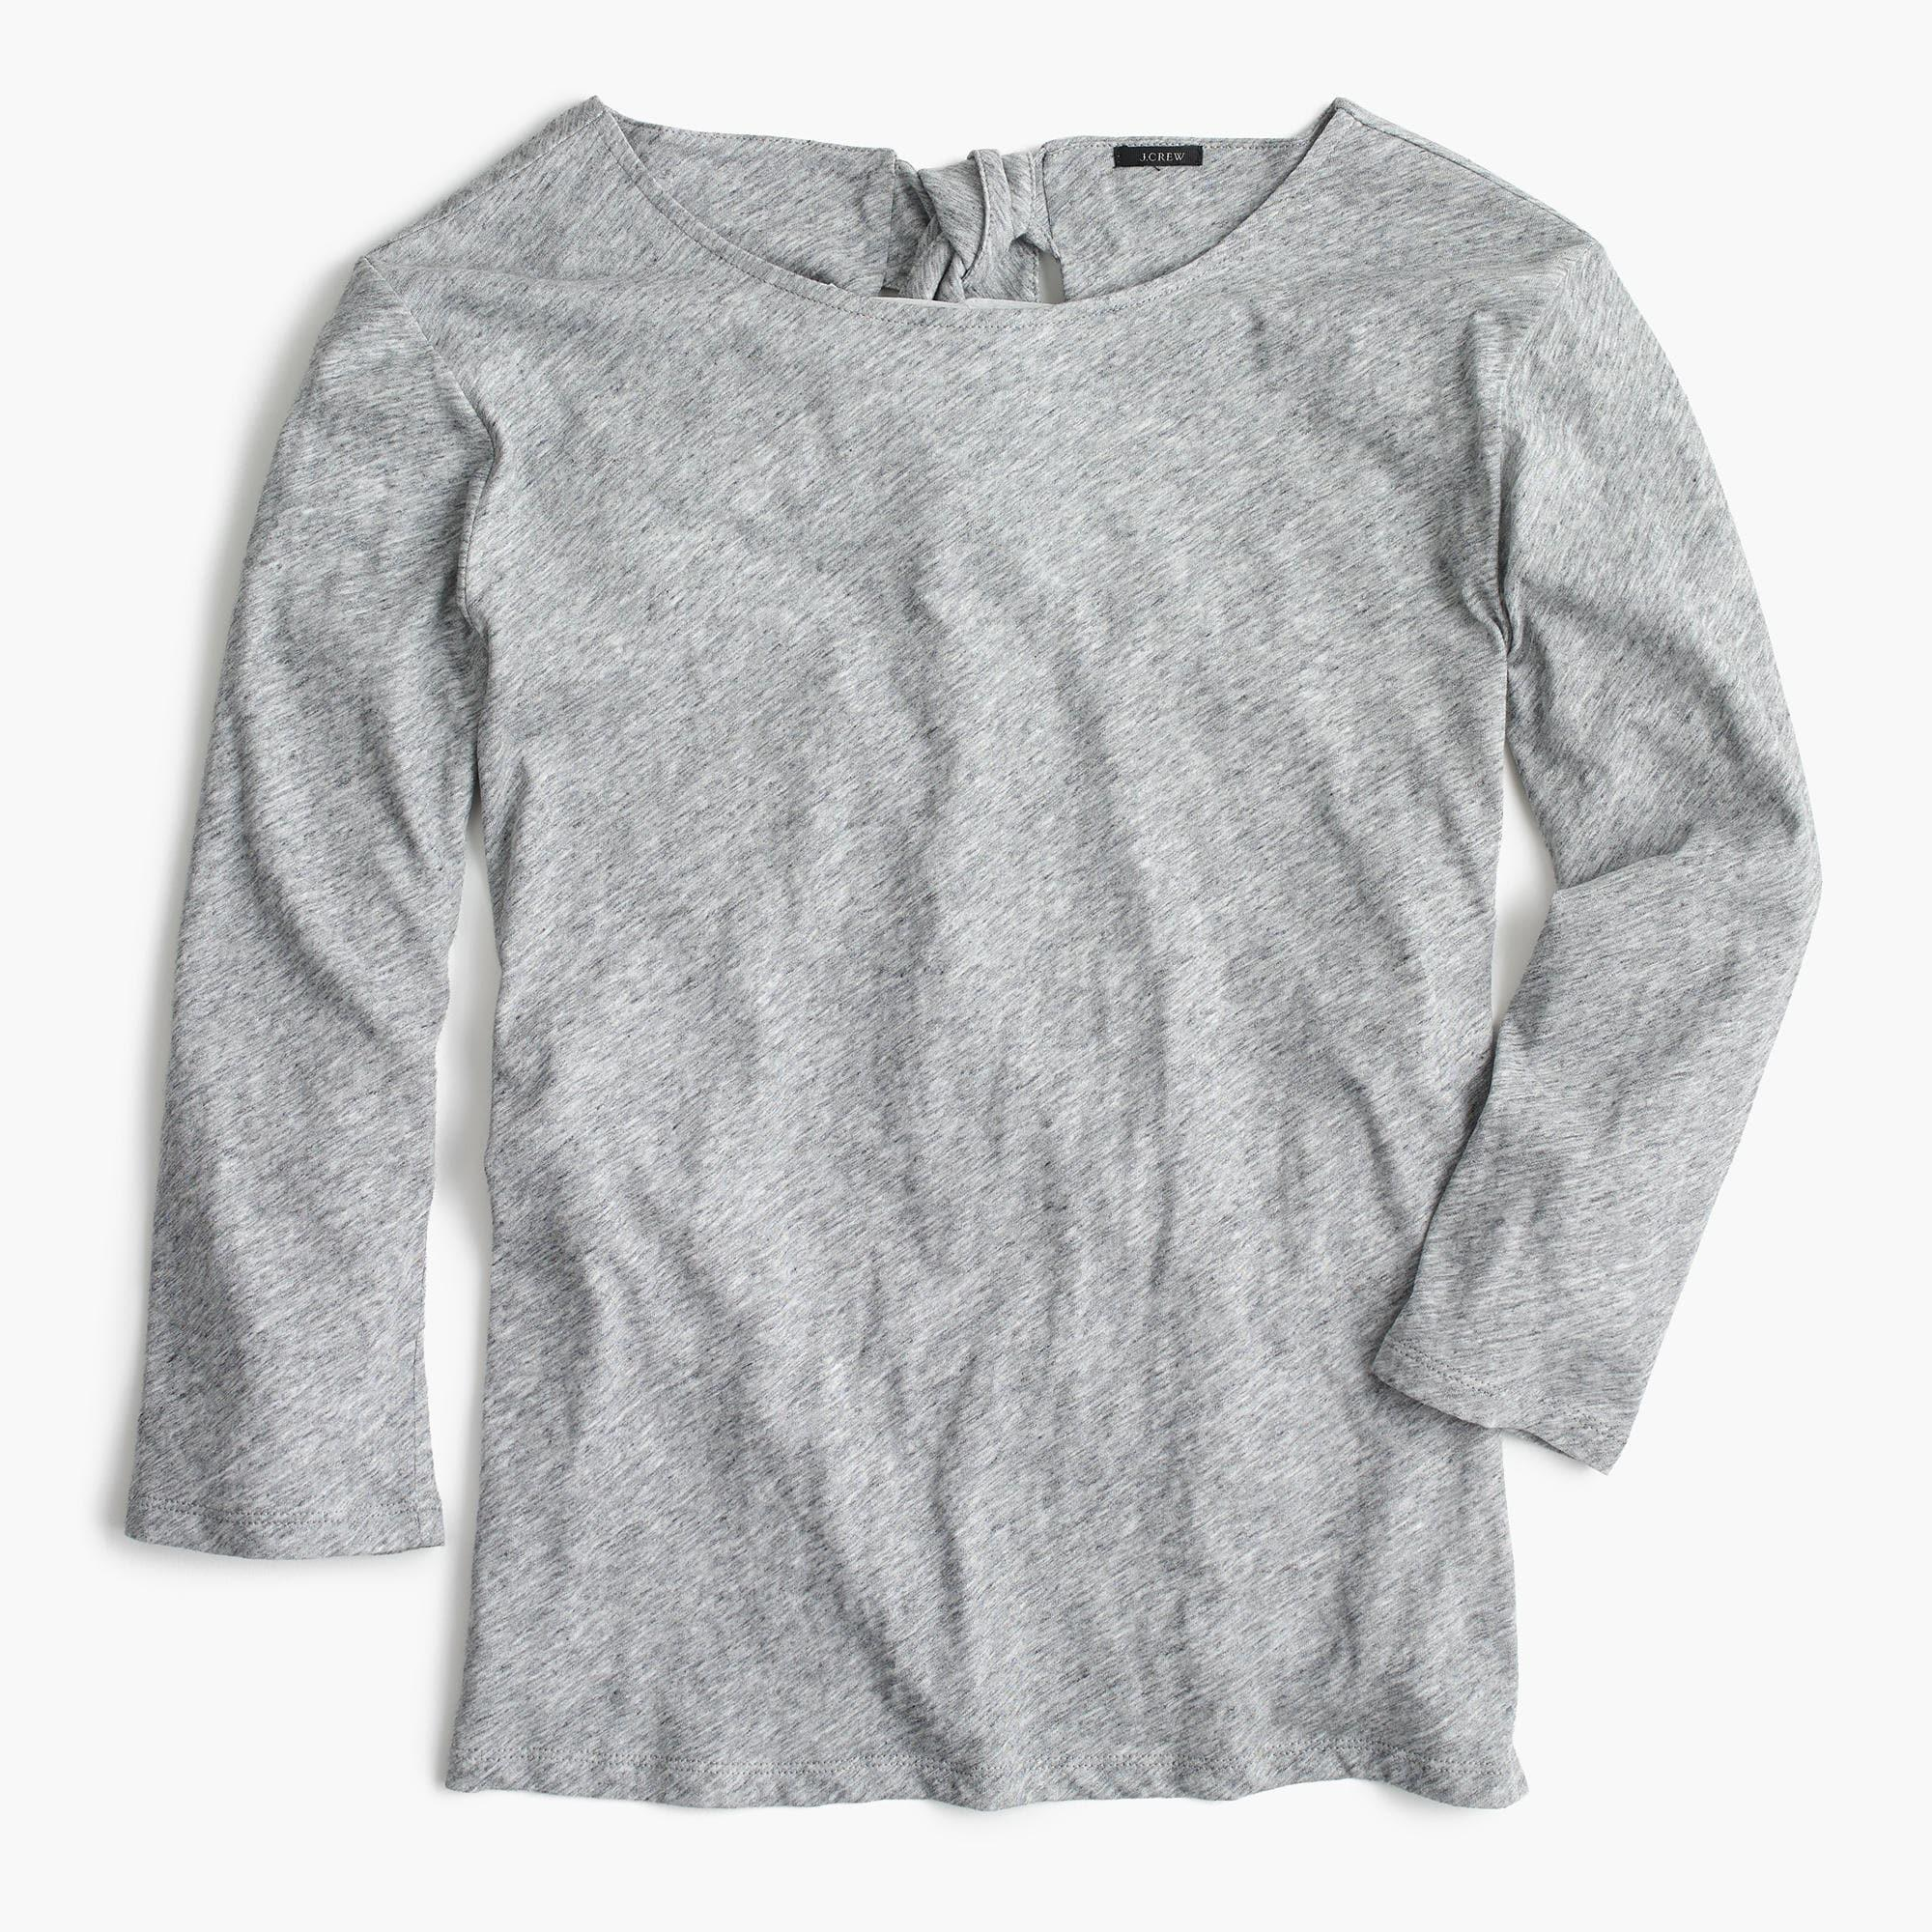 Tie back t shirt in gray lyst for How to make a tie back shirt